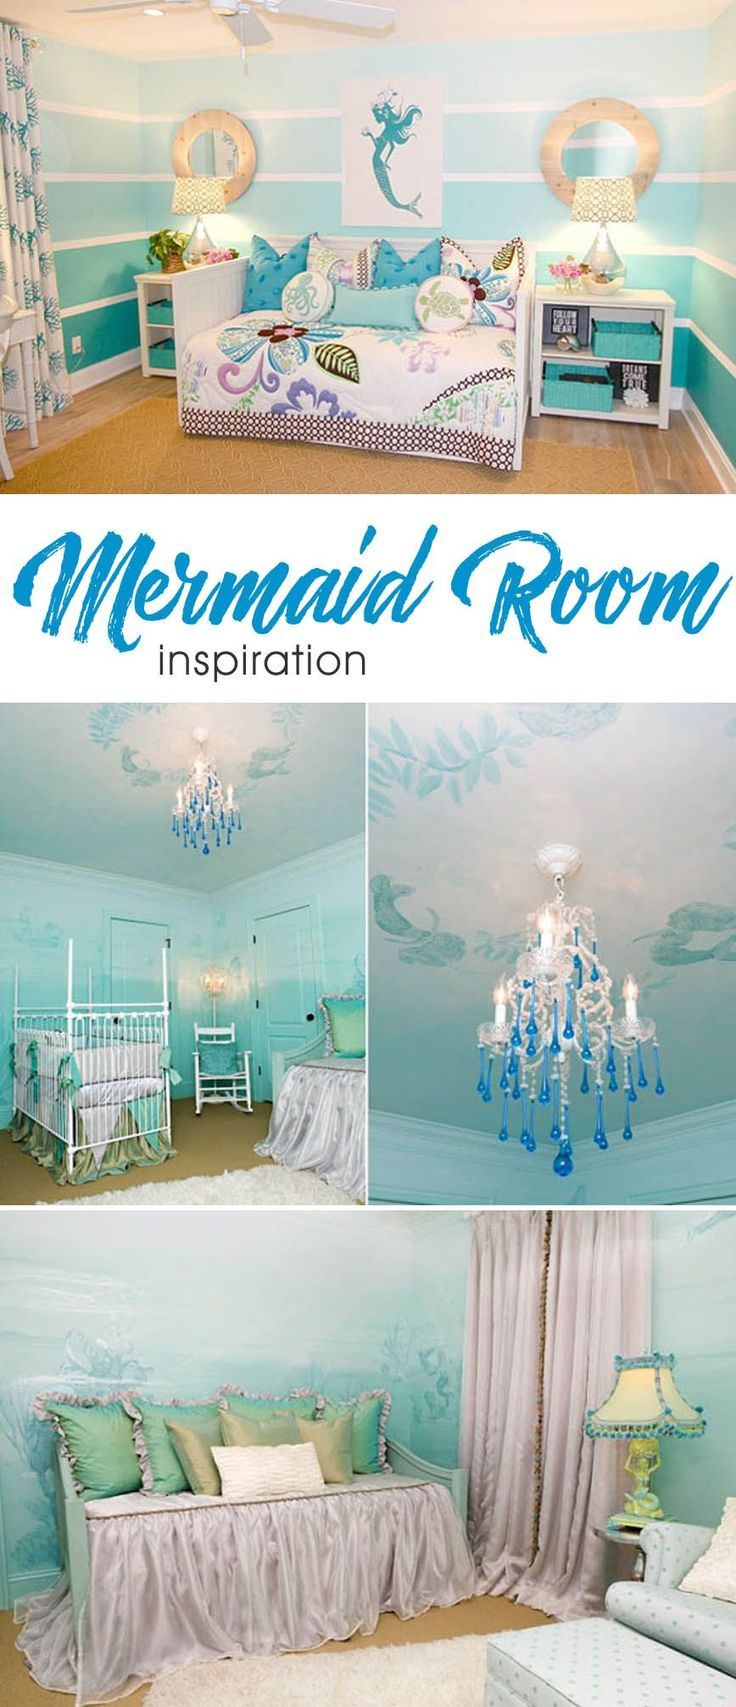 25 Best Ideas About Mermaid Girls Rooms On Pinterest Little Mermaid Room Little Mermaid